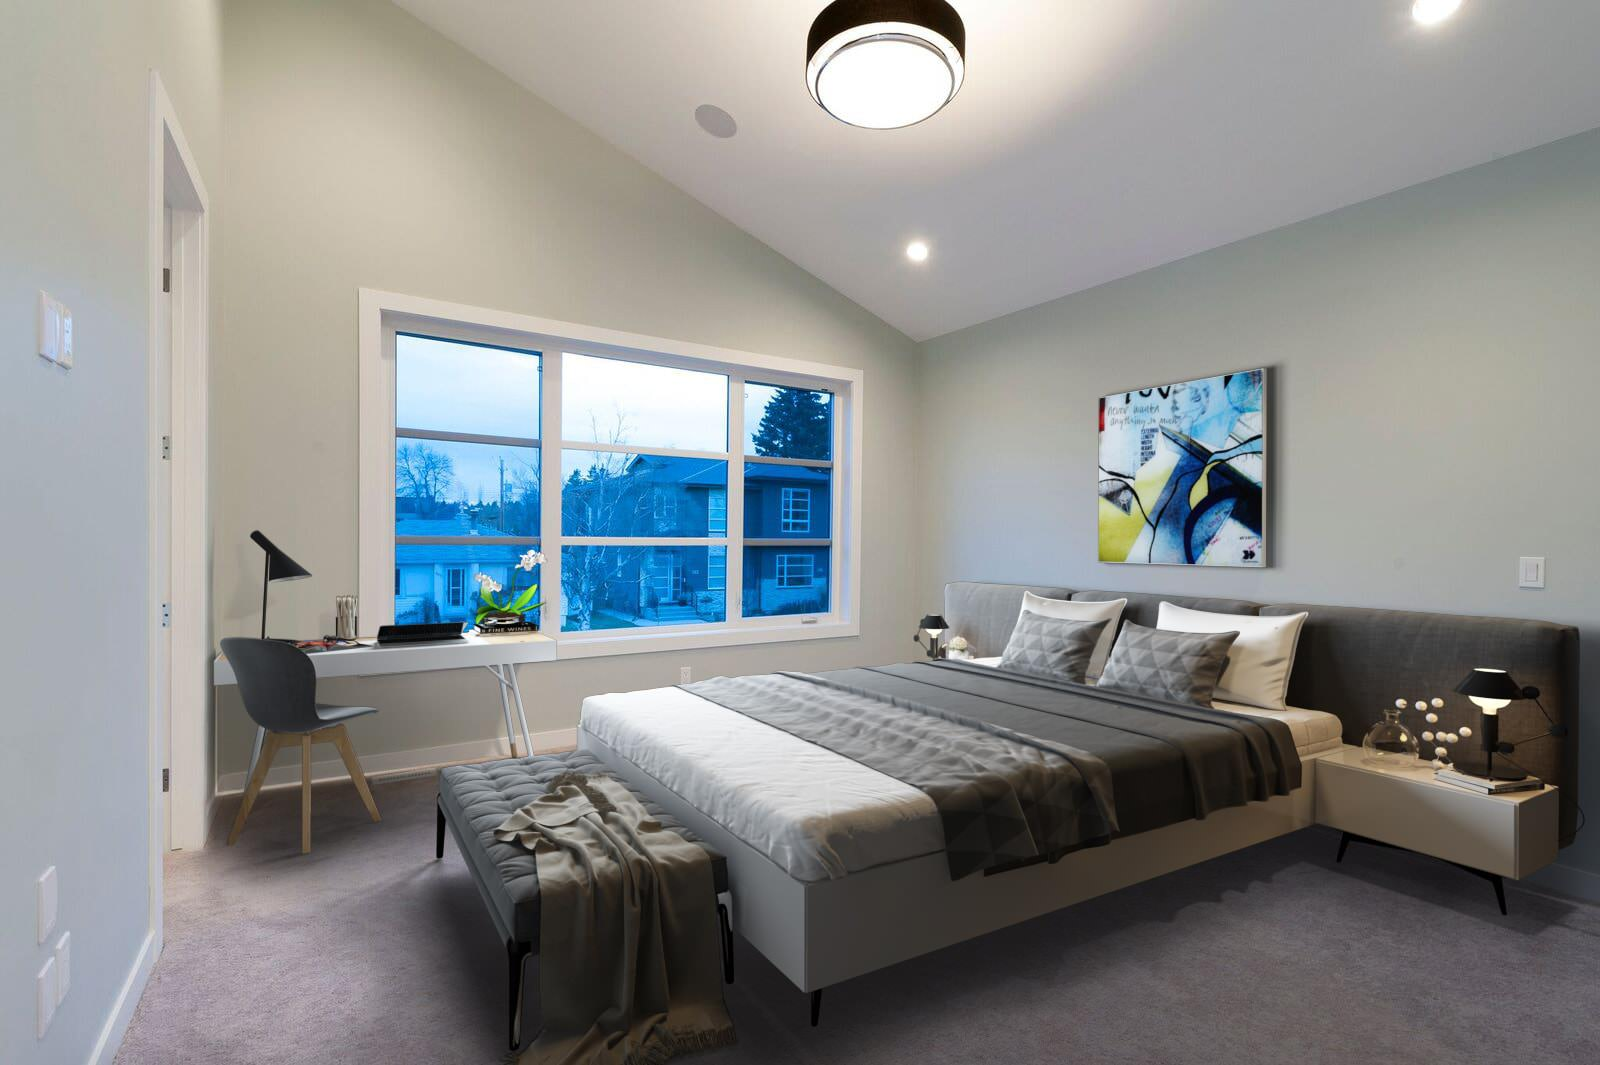 After-Virtual Staging For A Cozy Bedroom